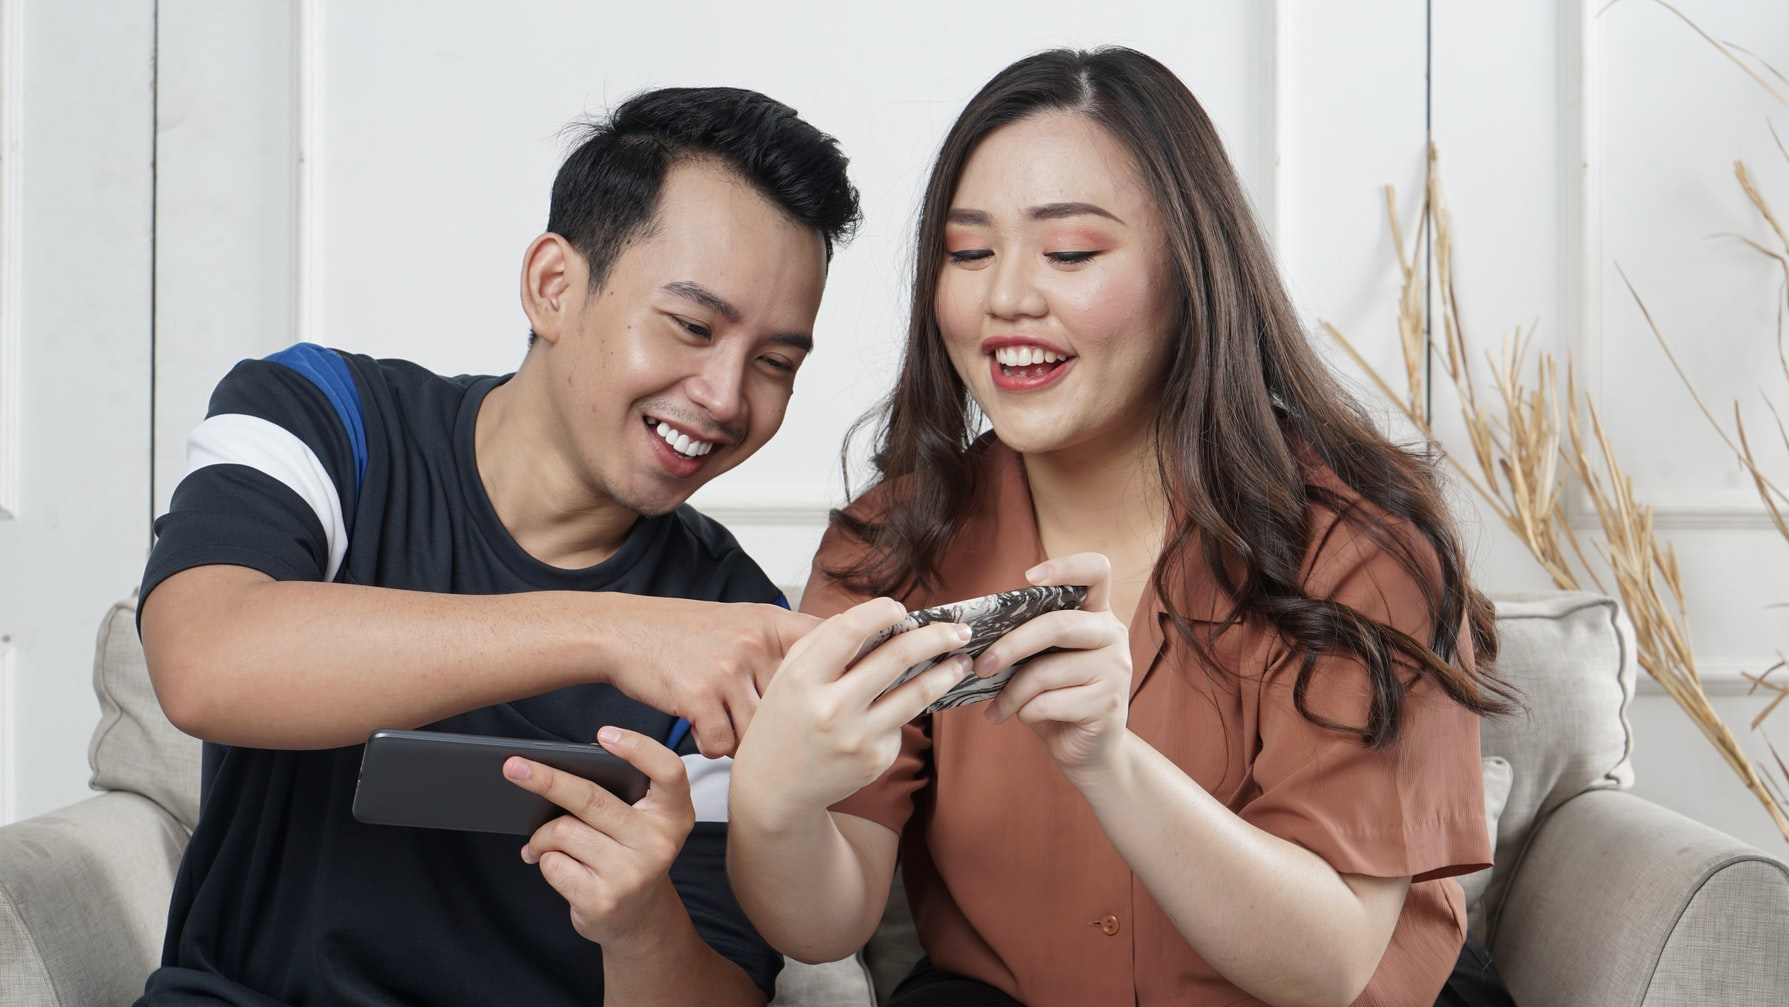 couple smiling at phones